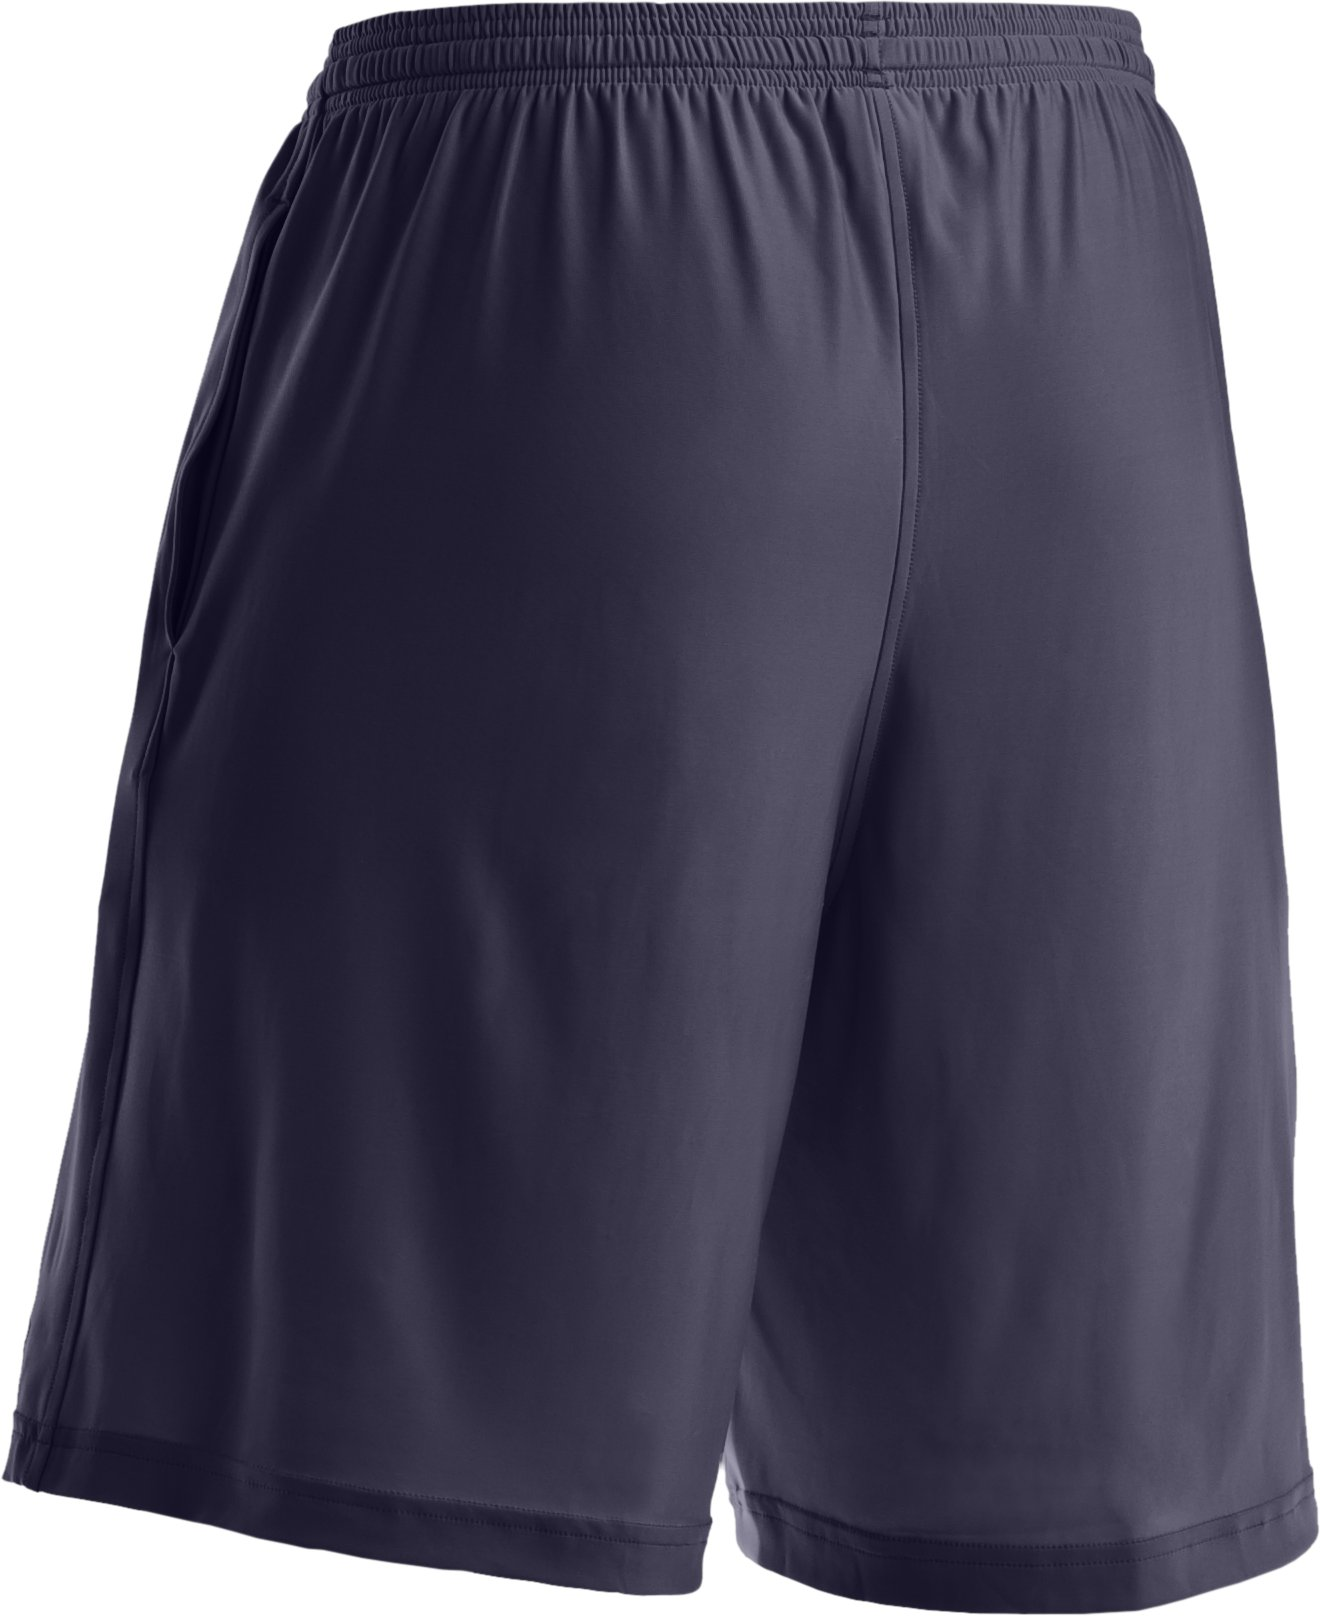 "Men's UA 9"" Microshorts II, Midnight Navy"